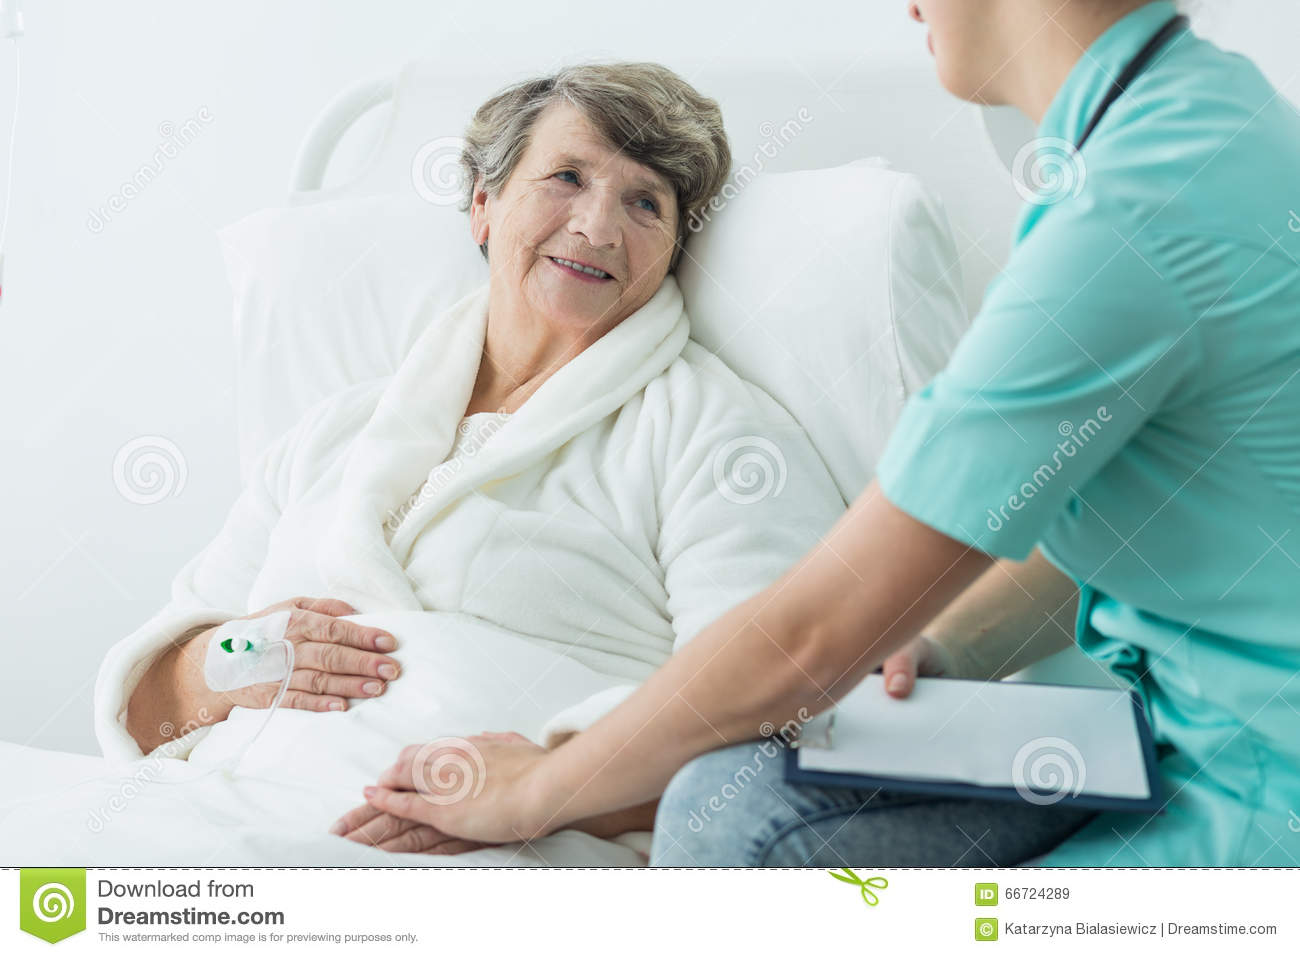 Taking Care Of Patient Stock Photo - Image: 66724289